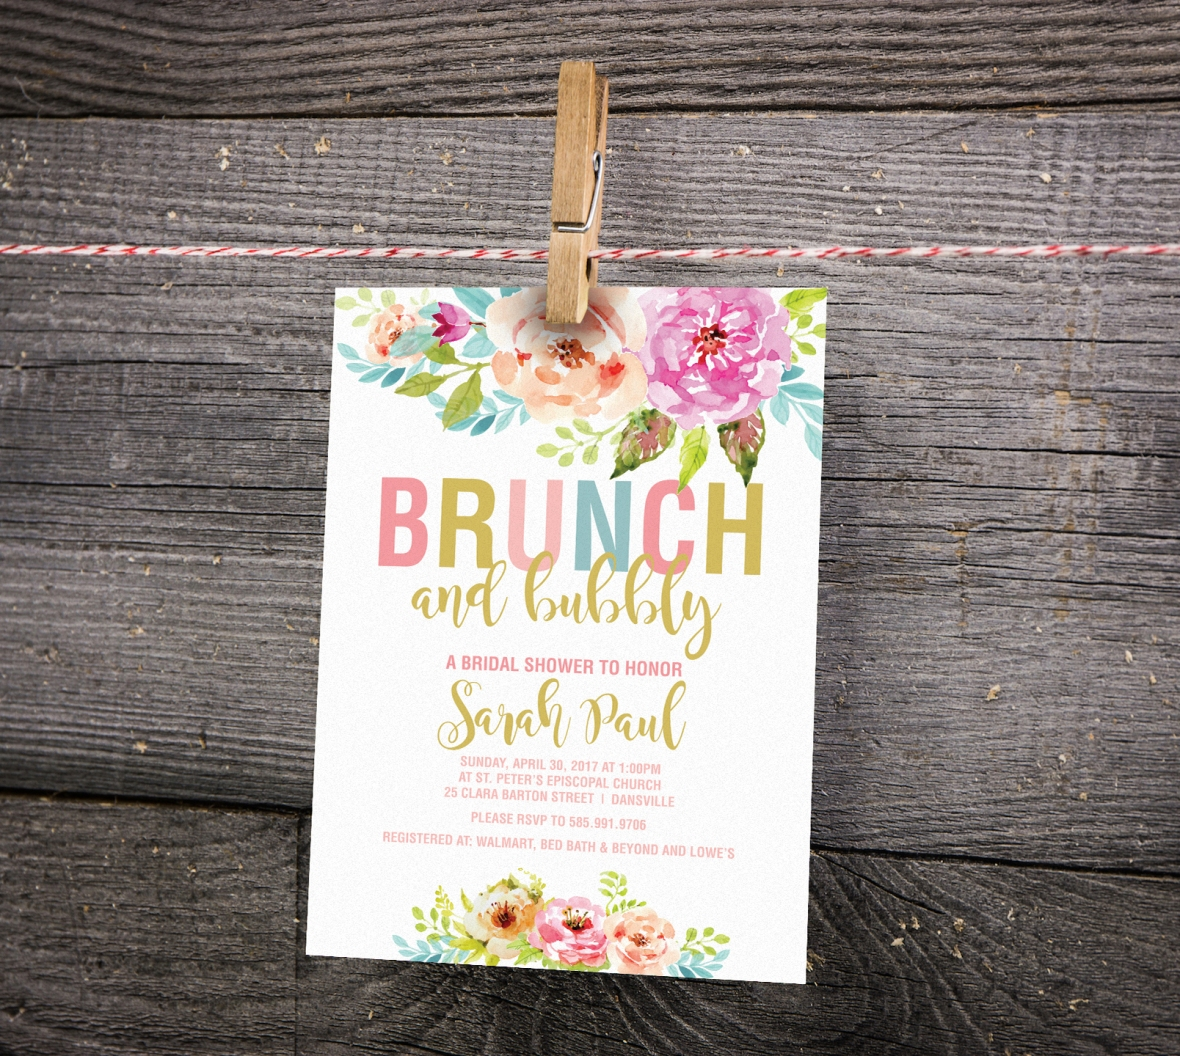 Brunch and Bubbly Shower Invitations, Floral Shower Invitations, Floral WEdding Shower Invitations